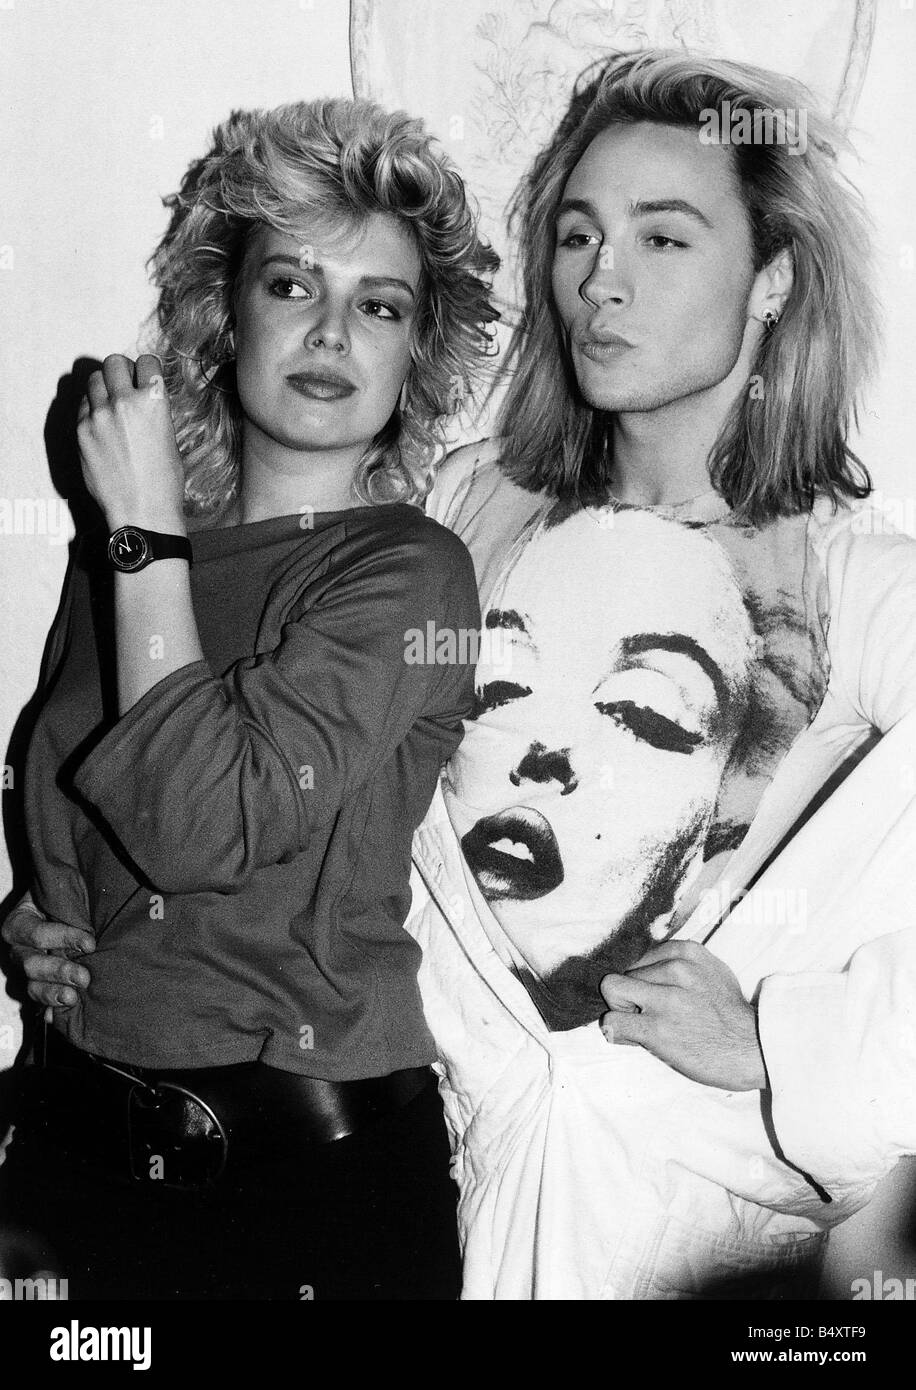 Kim Wilde pop singer with Marilyn 1984 - Stock Image